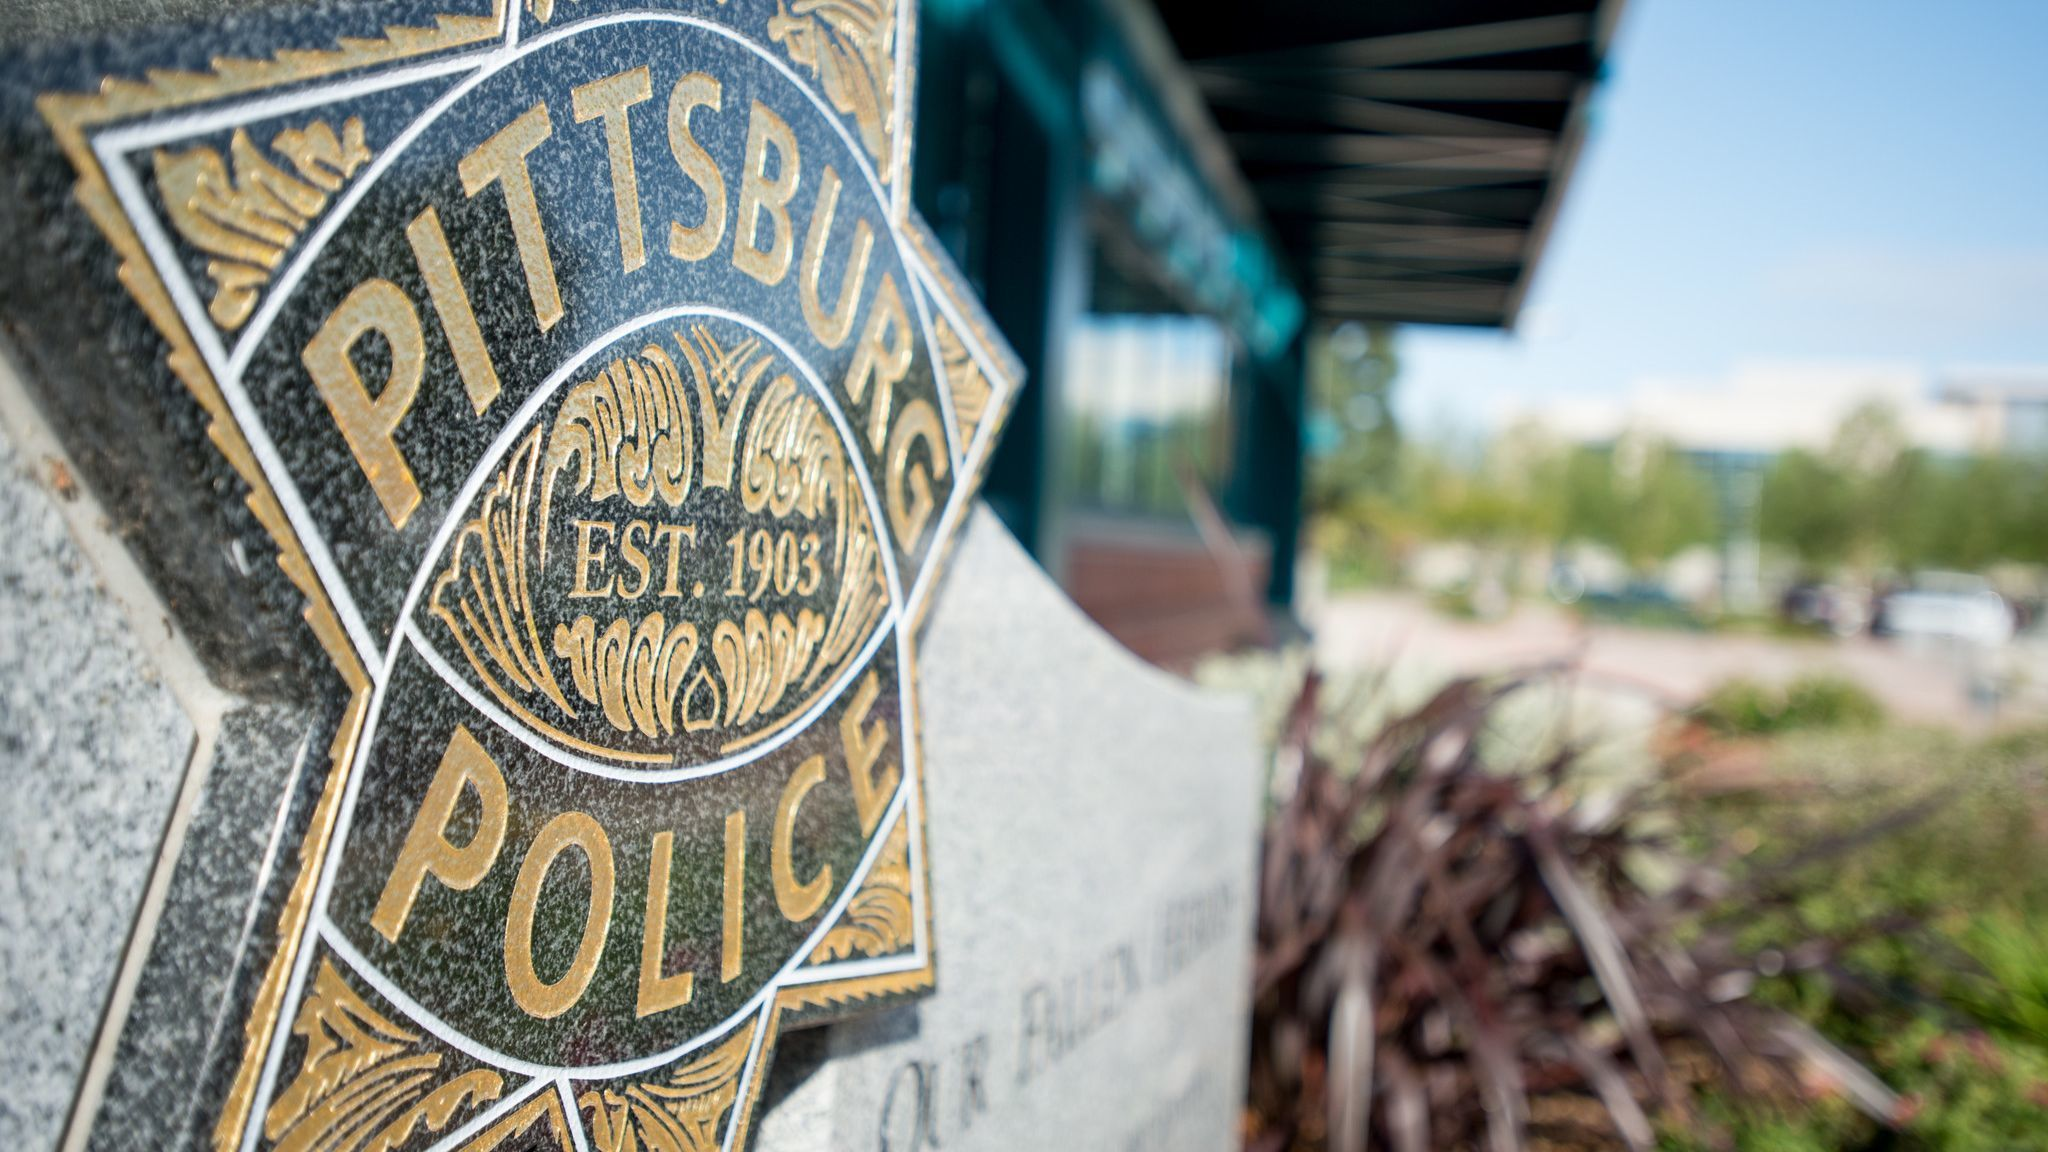 Pittsburg Police Department